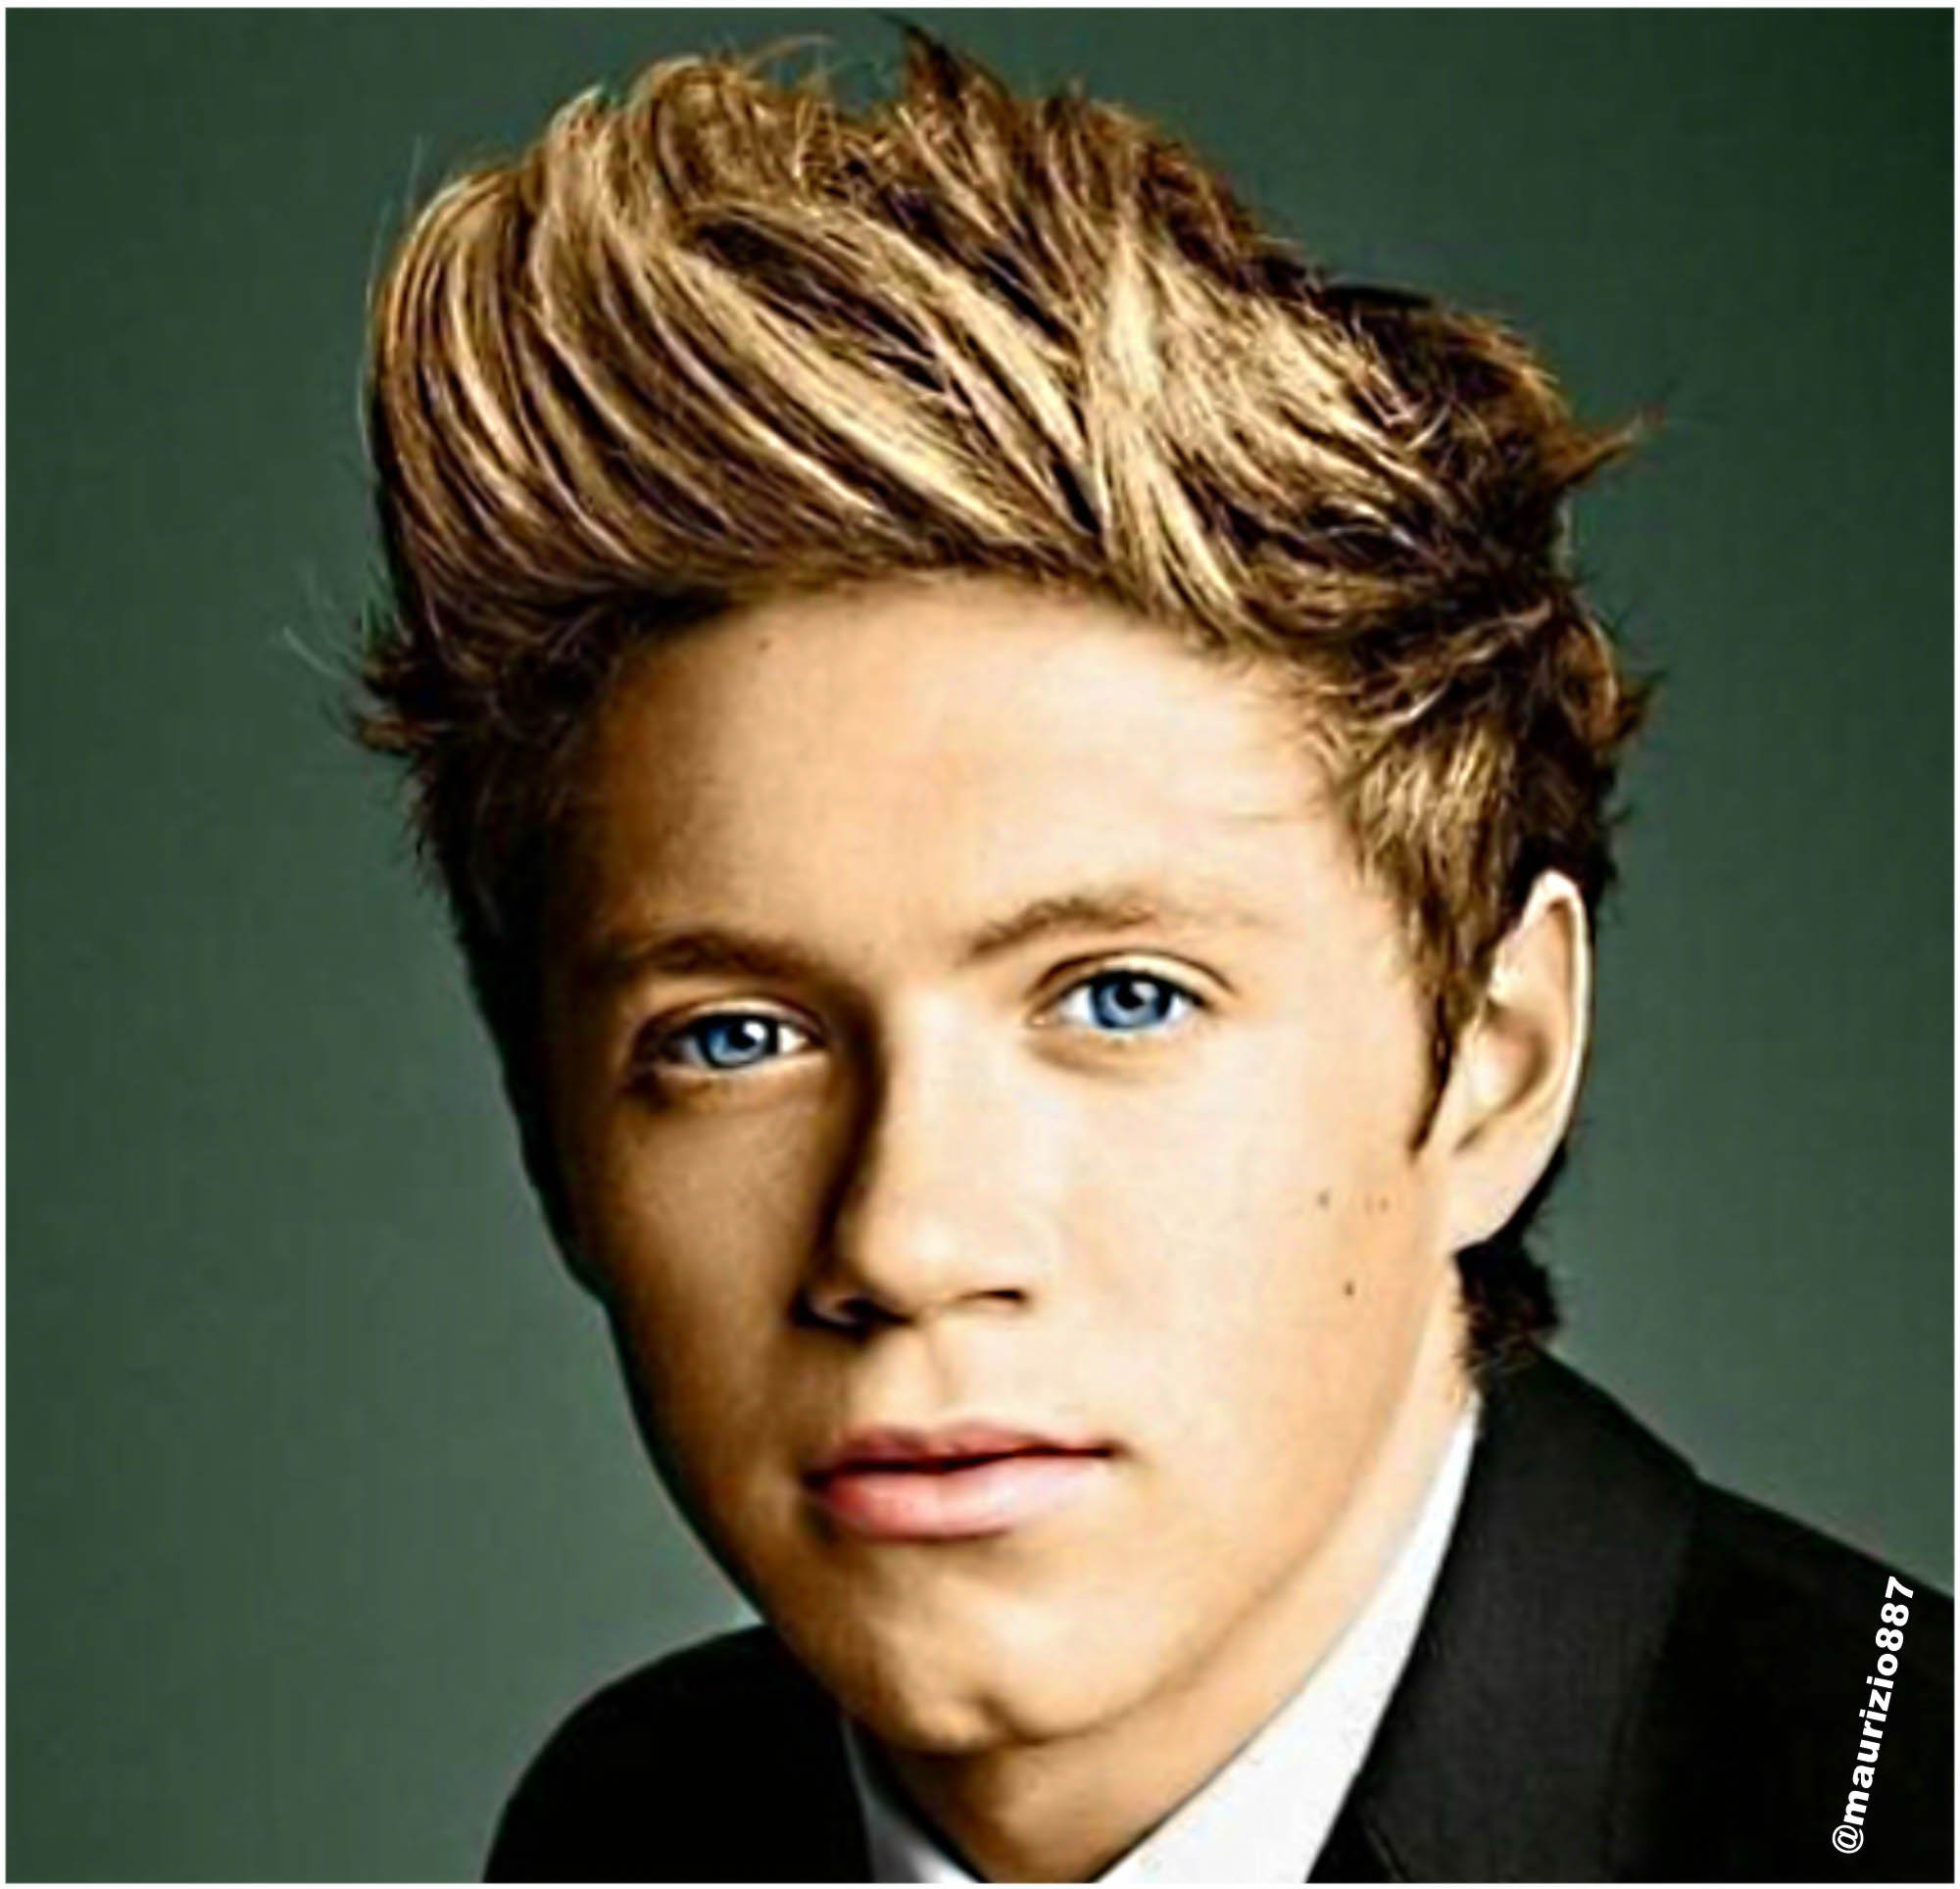 HD Niall Horan One Direction #010 Wallpaper Wallpaper